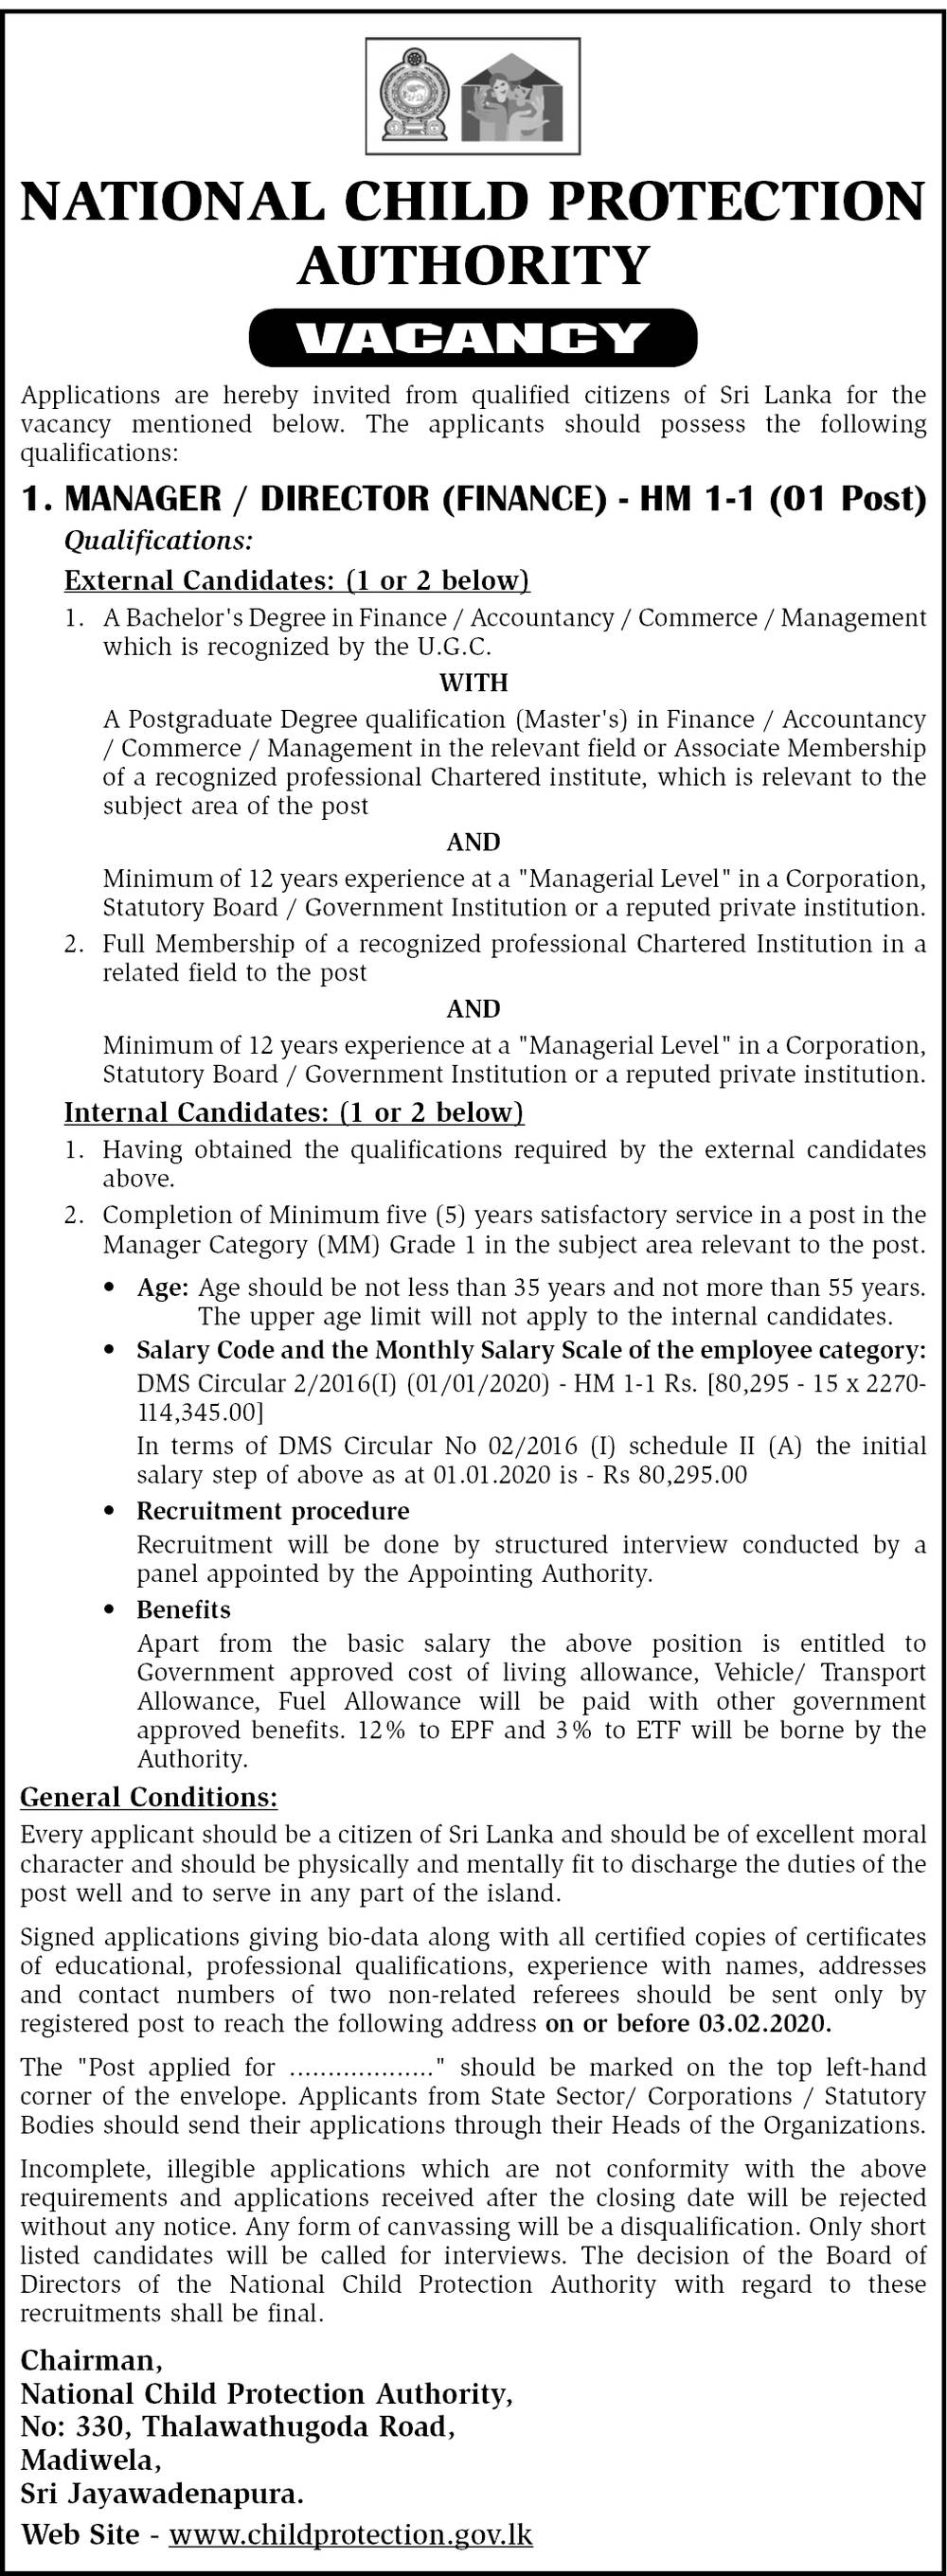 Manager / Director (Finance) - National Child Protection Authority